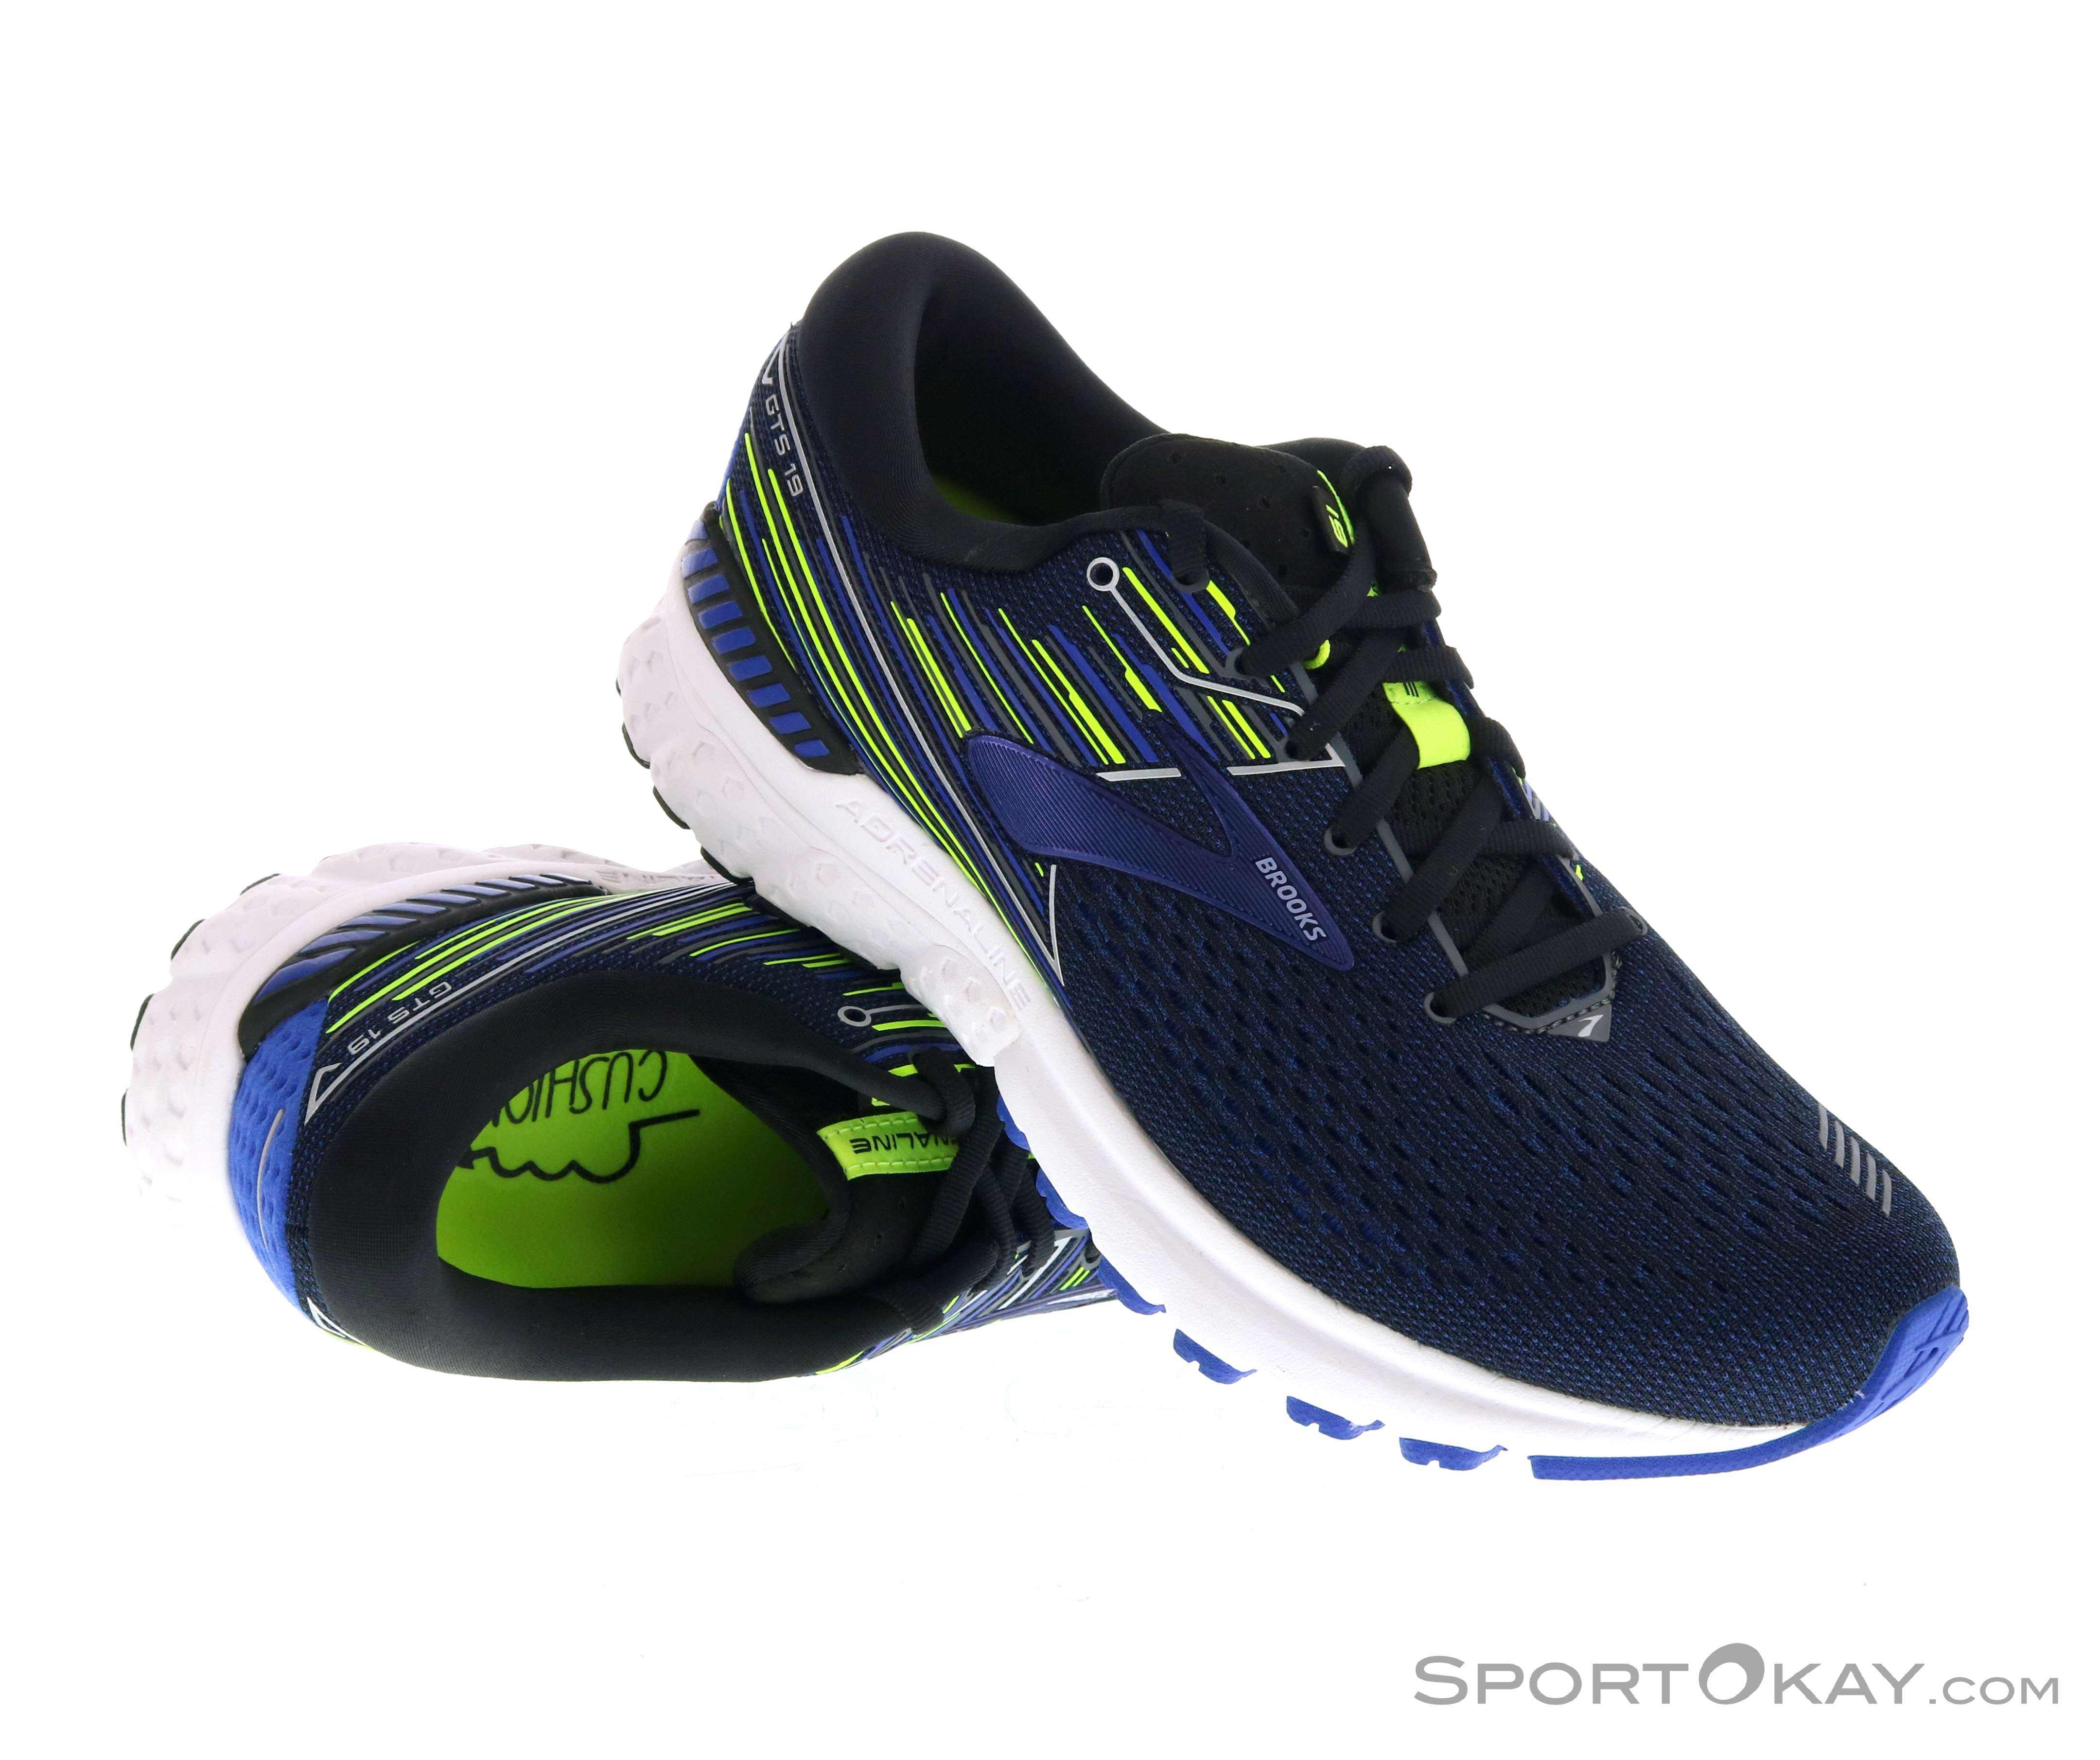 3ded0704a60 Brooks Adrenaline GTS 19 Mens Running Shoes - Running Shoes ...